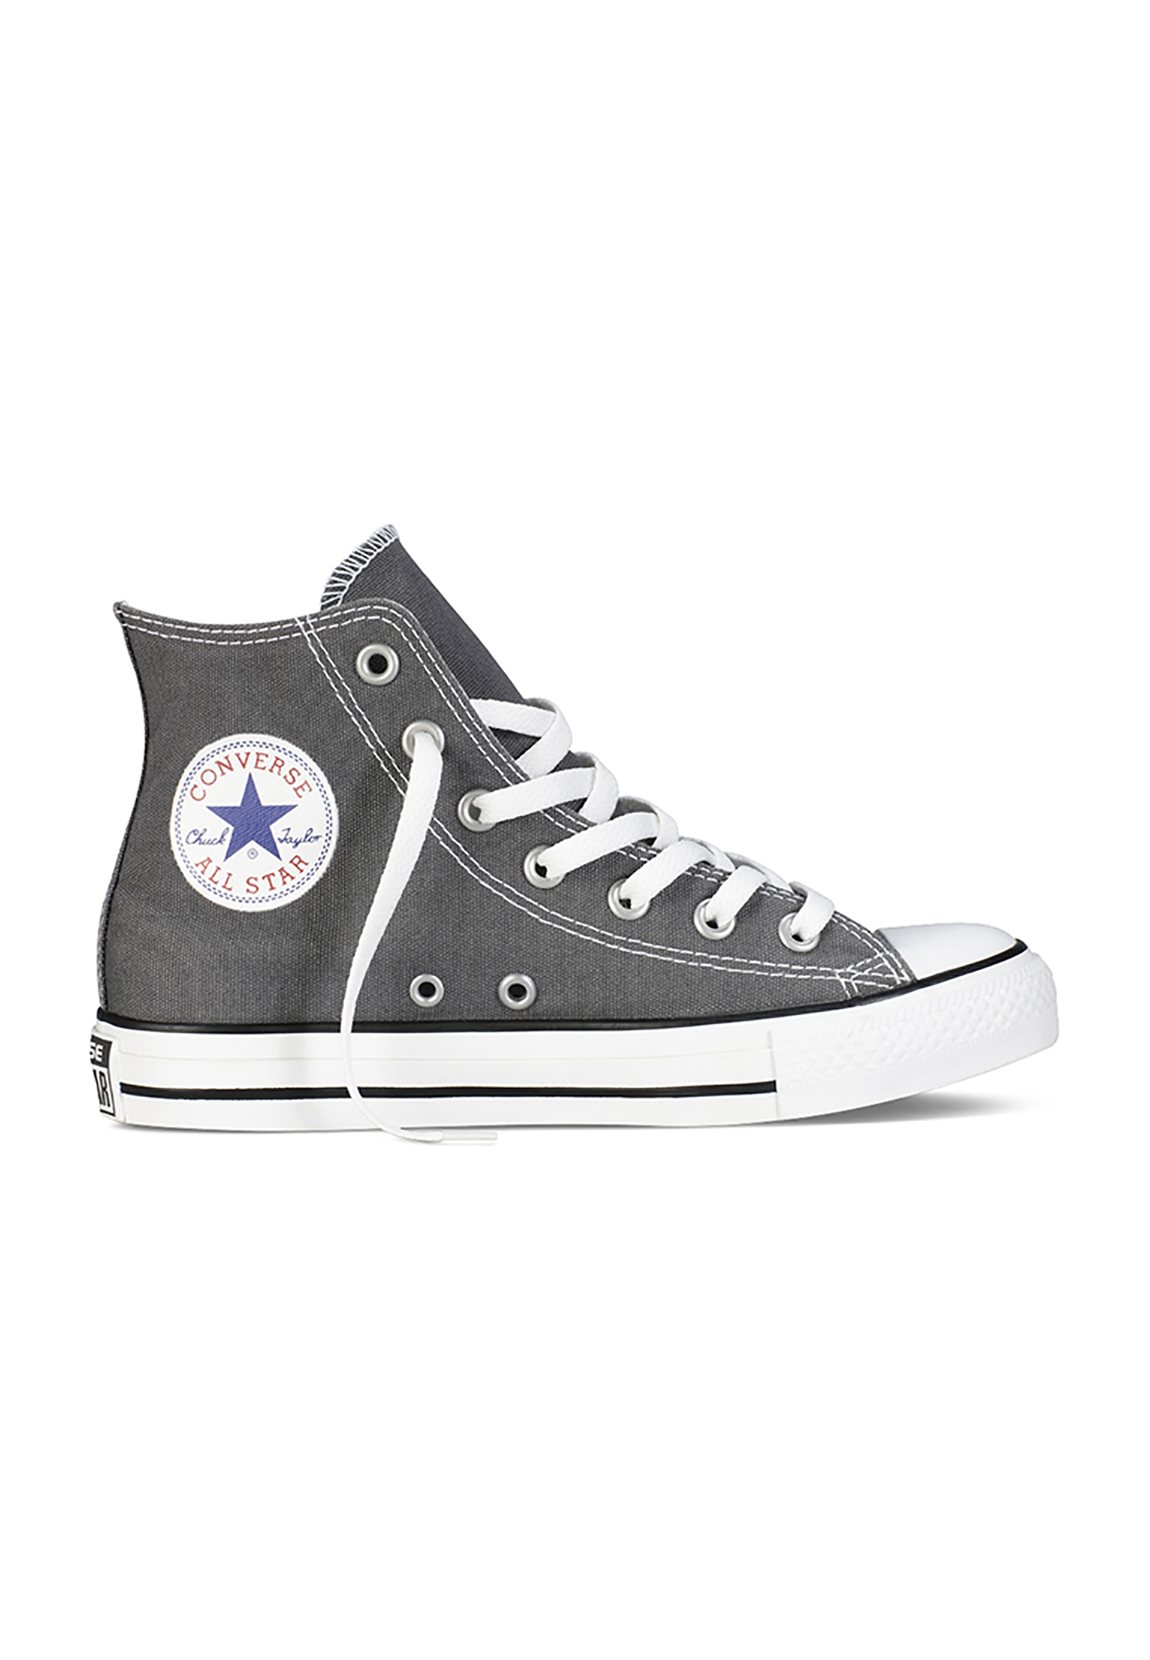 sports shoes 639c5 63ad9 Converse Chucks CT AS Seasnl HI 1J793C Grau